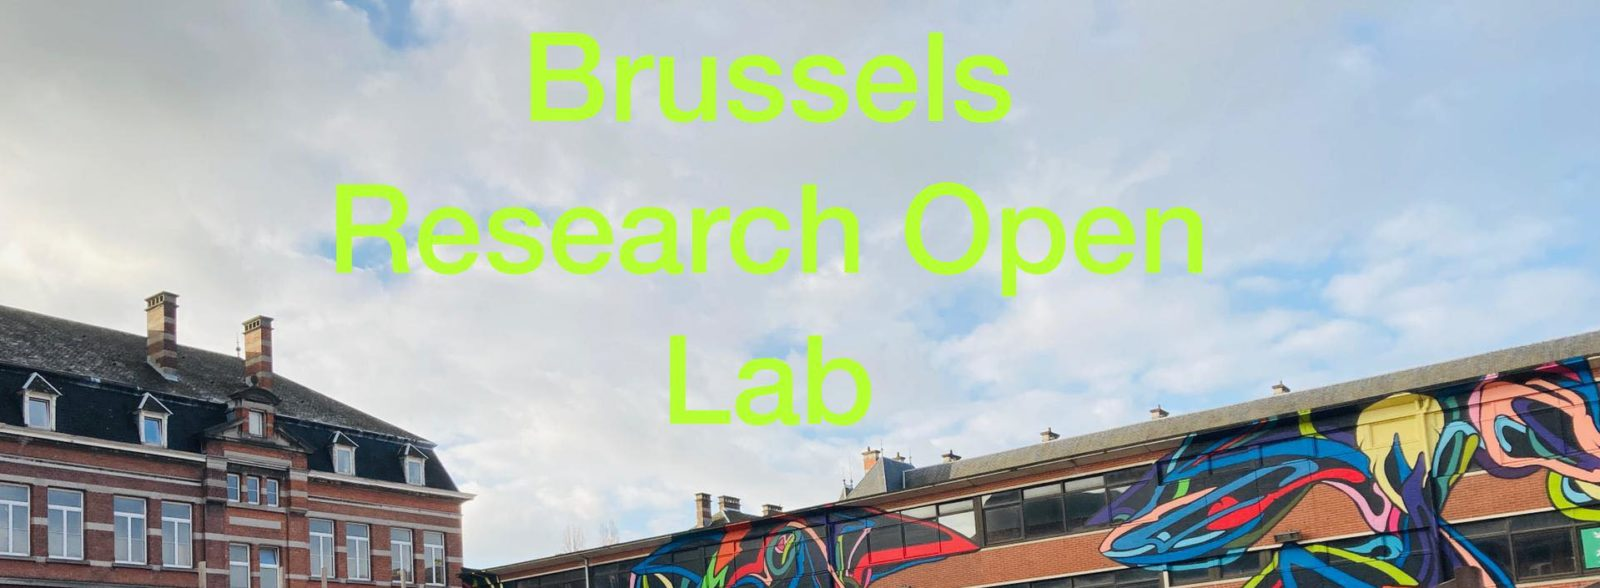 Banner Brussels Research Open Lab